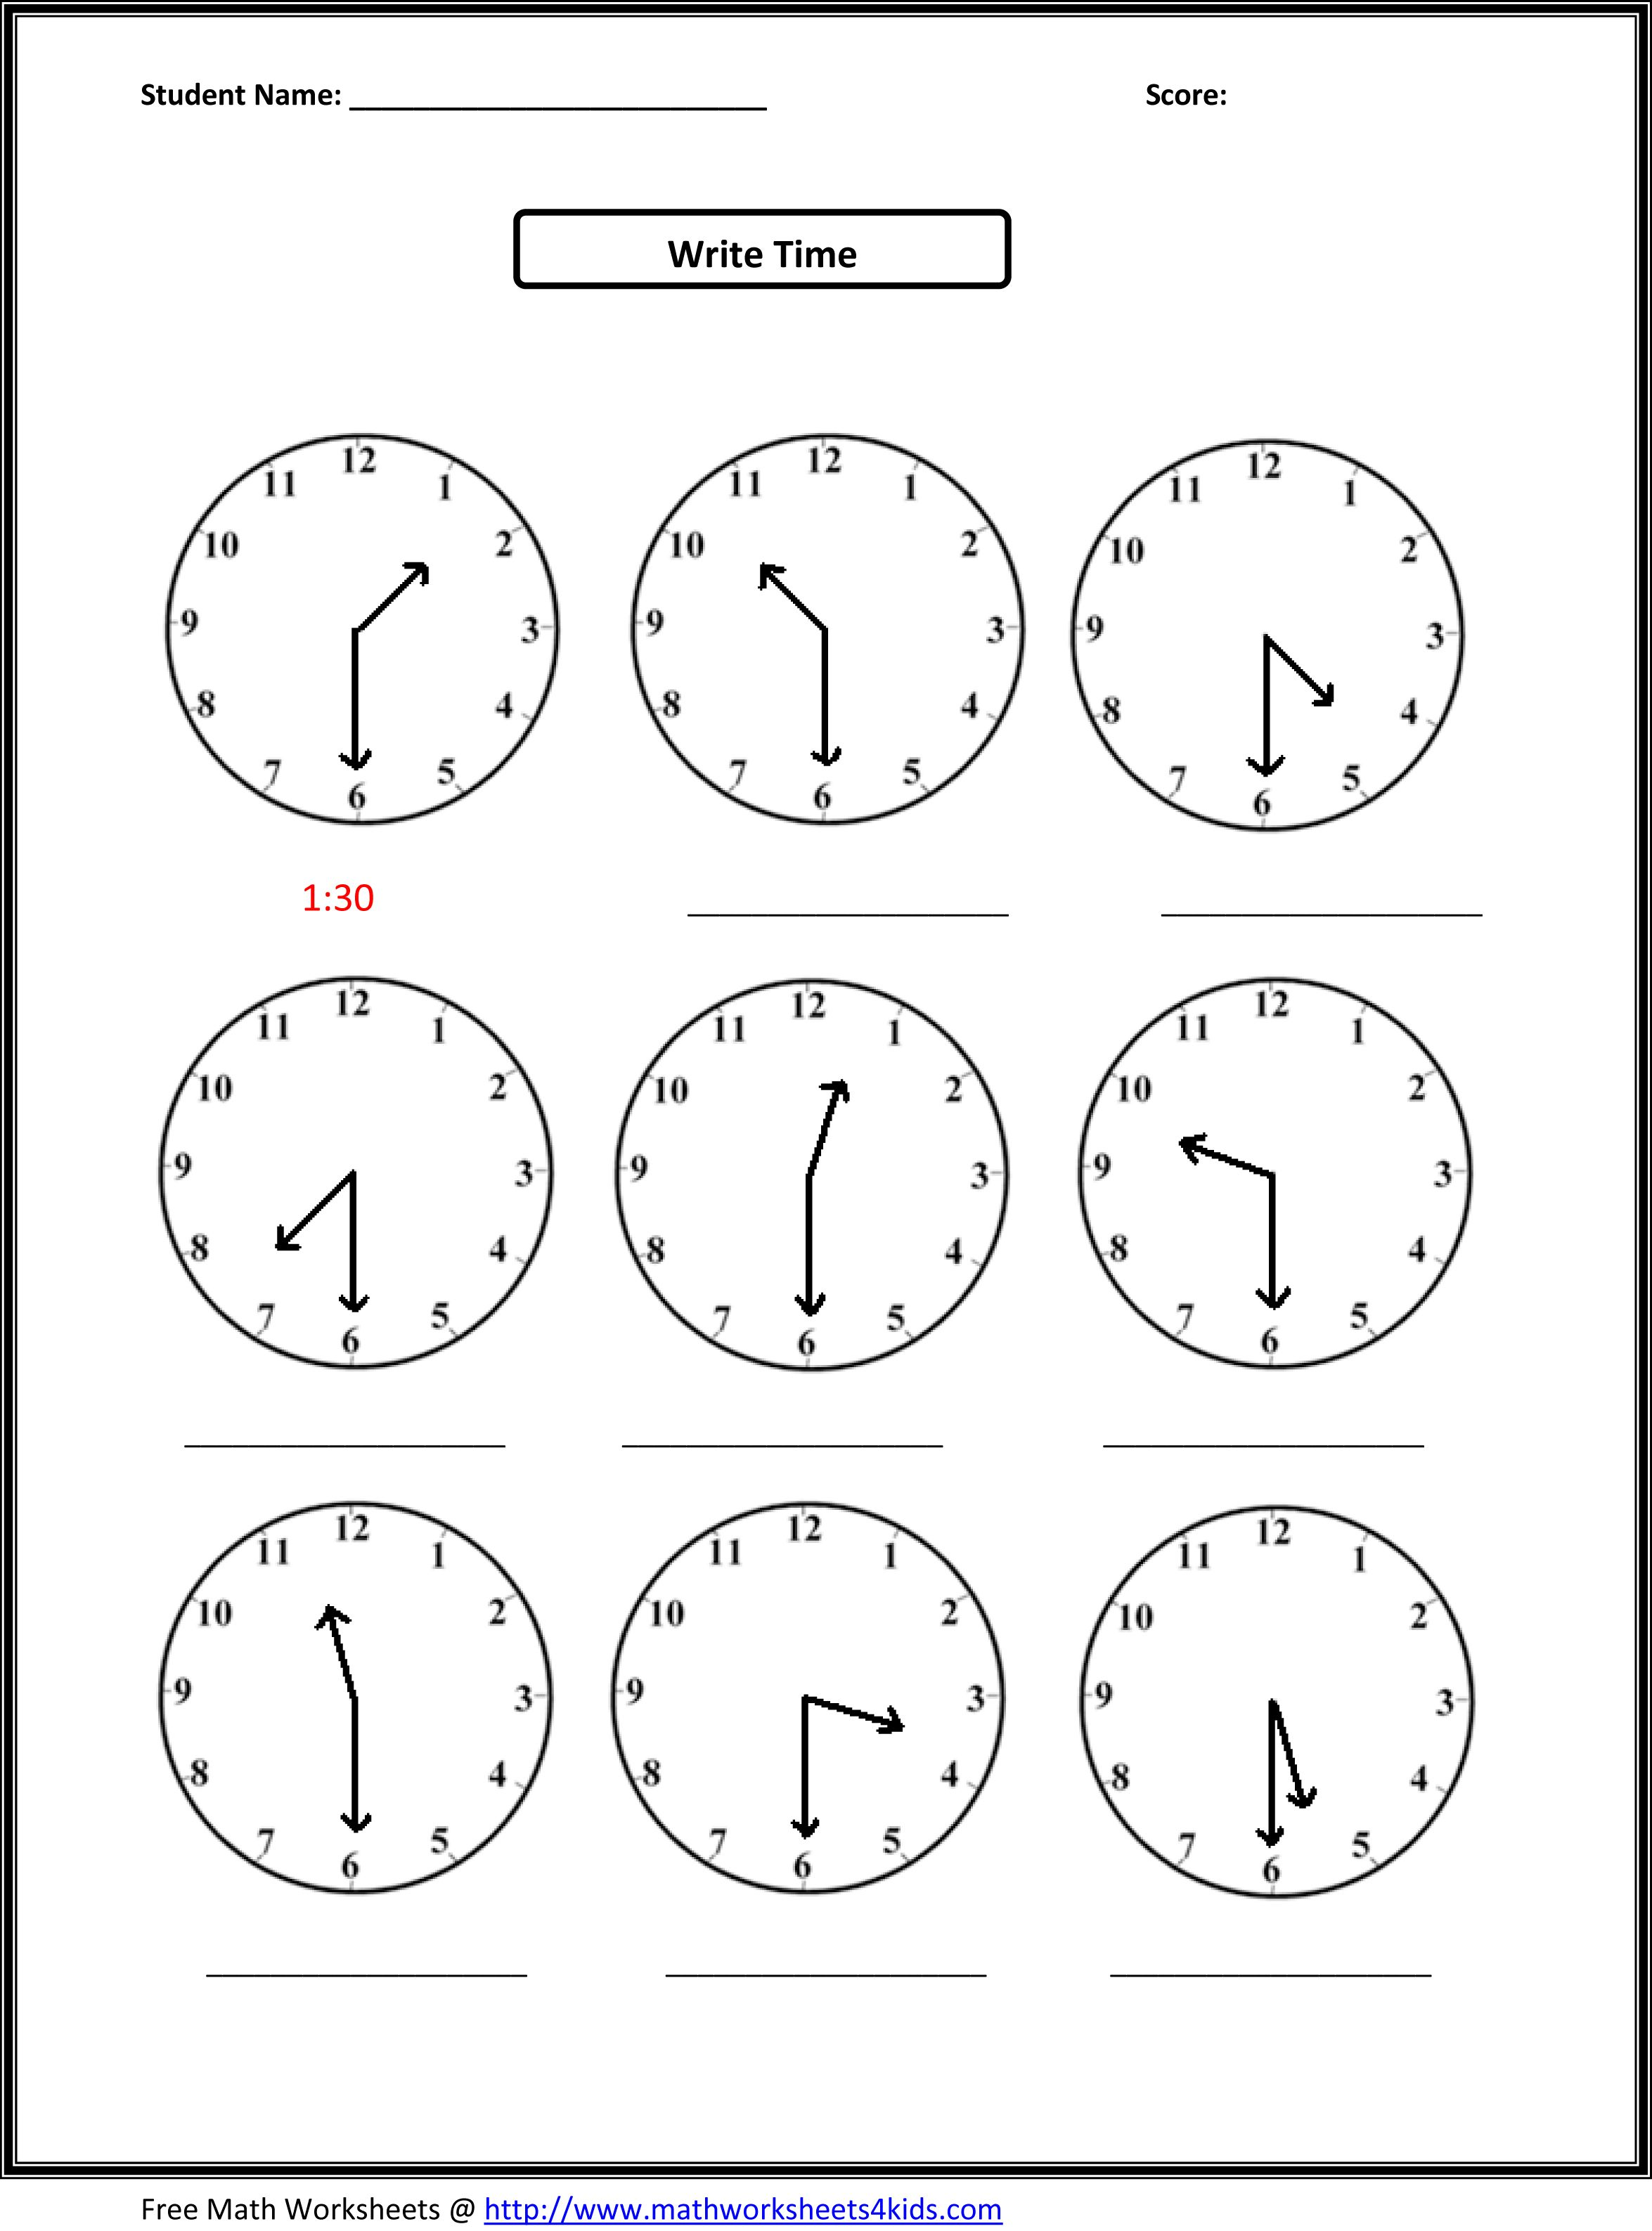 Weirdmailus  Picturesque Worksheet On Time For Grade   Reocurent With Glamorous Free Printable Telling Time Worksheets Nd Grade  Reocurent With Delectable Worksheets On Functions Also Algebra Worksheet Answers In Addition Capitalism Worksheet And Spanish Subjunctive Practice Worksheets As Well As Free Idiom Worksheets Additionally Beachbody Px Worksheets From Reocurentcom With Weirdmailus  Glamorous Worksheet On Time For Grade   Reocurent With Delectable Free Printable Telling Time Worksheets Nd Grade  Reocurent And Picturesque Worksheets On Functions Also Algebra Worksheet Answers In Addition Capitalism Worksheet From Reocurentcom